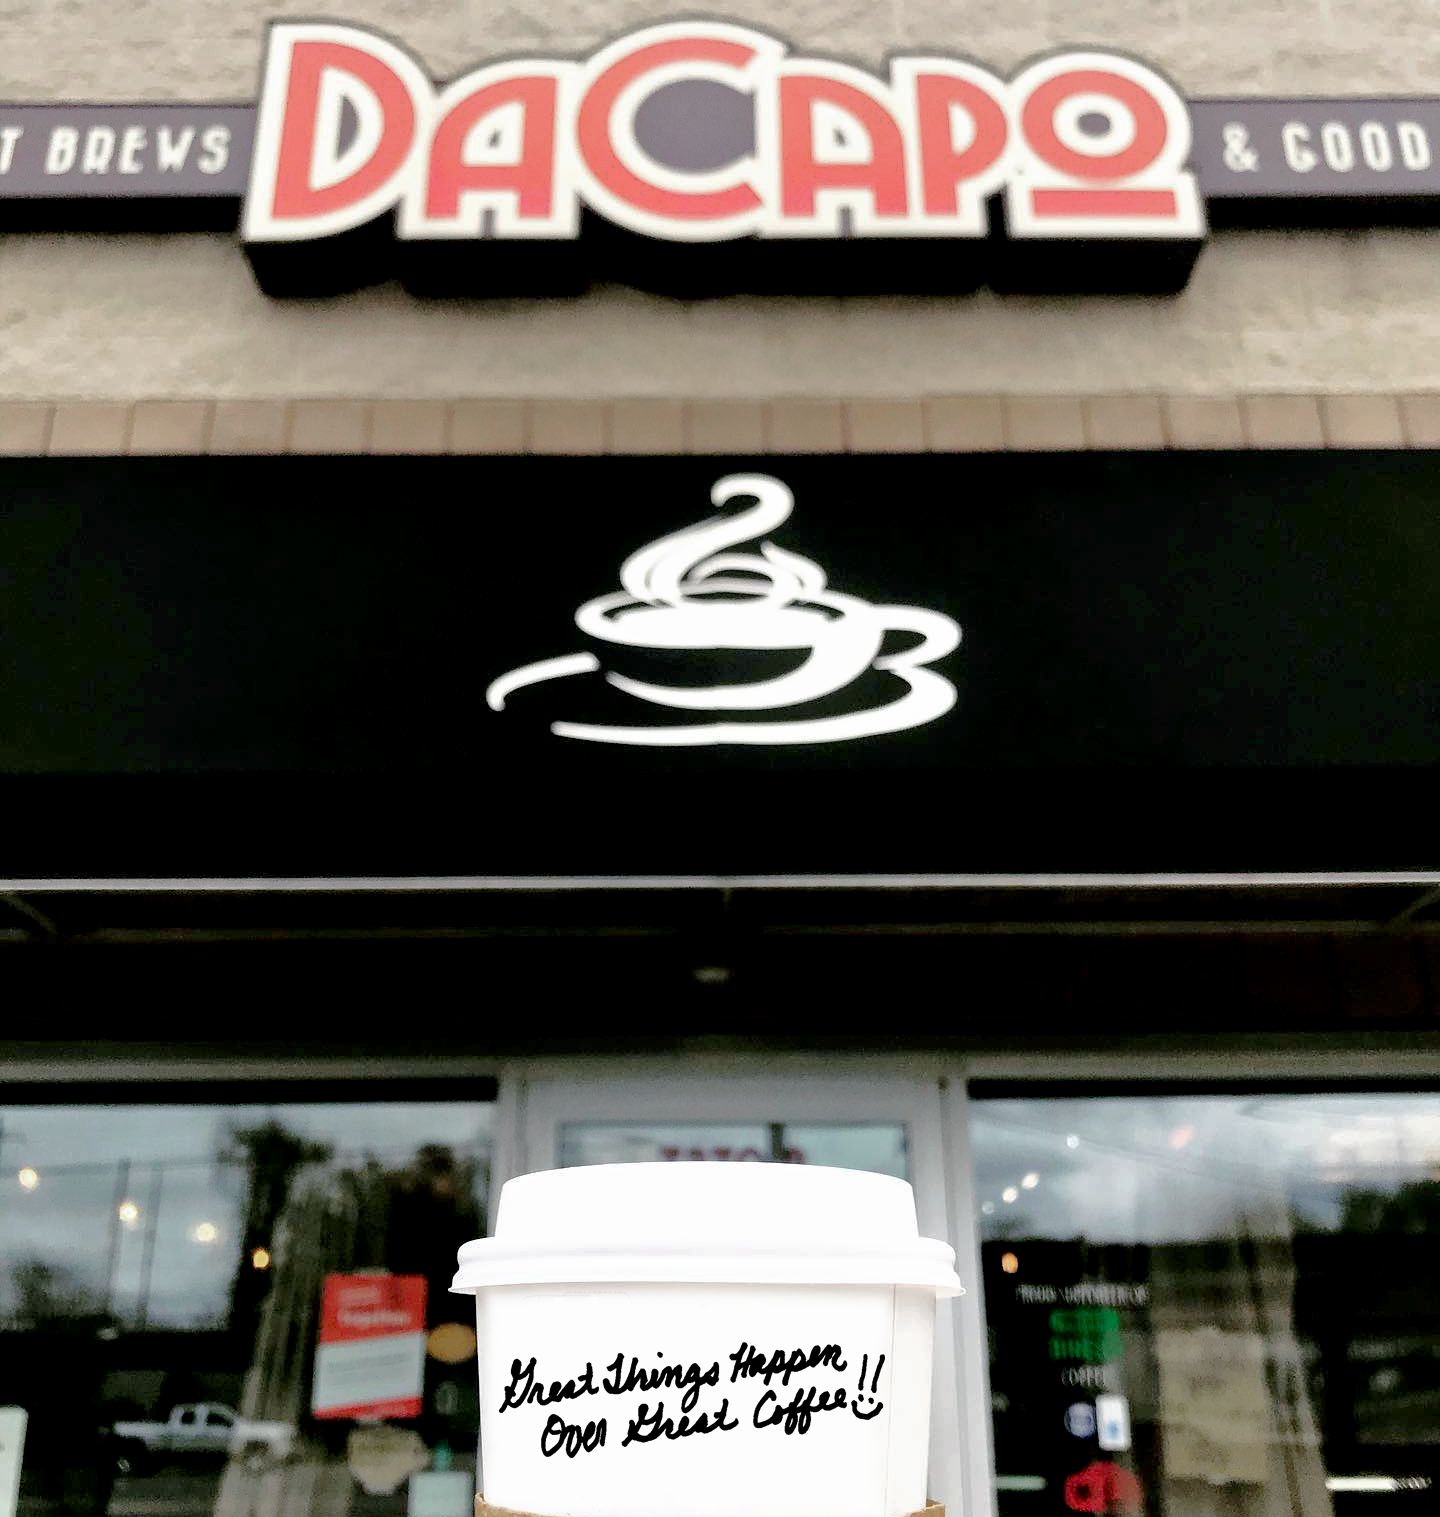 Picture of front of DaCapo